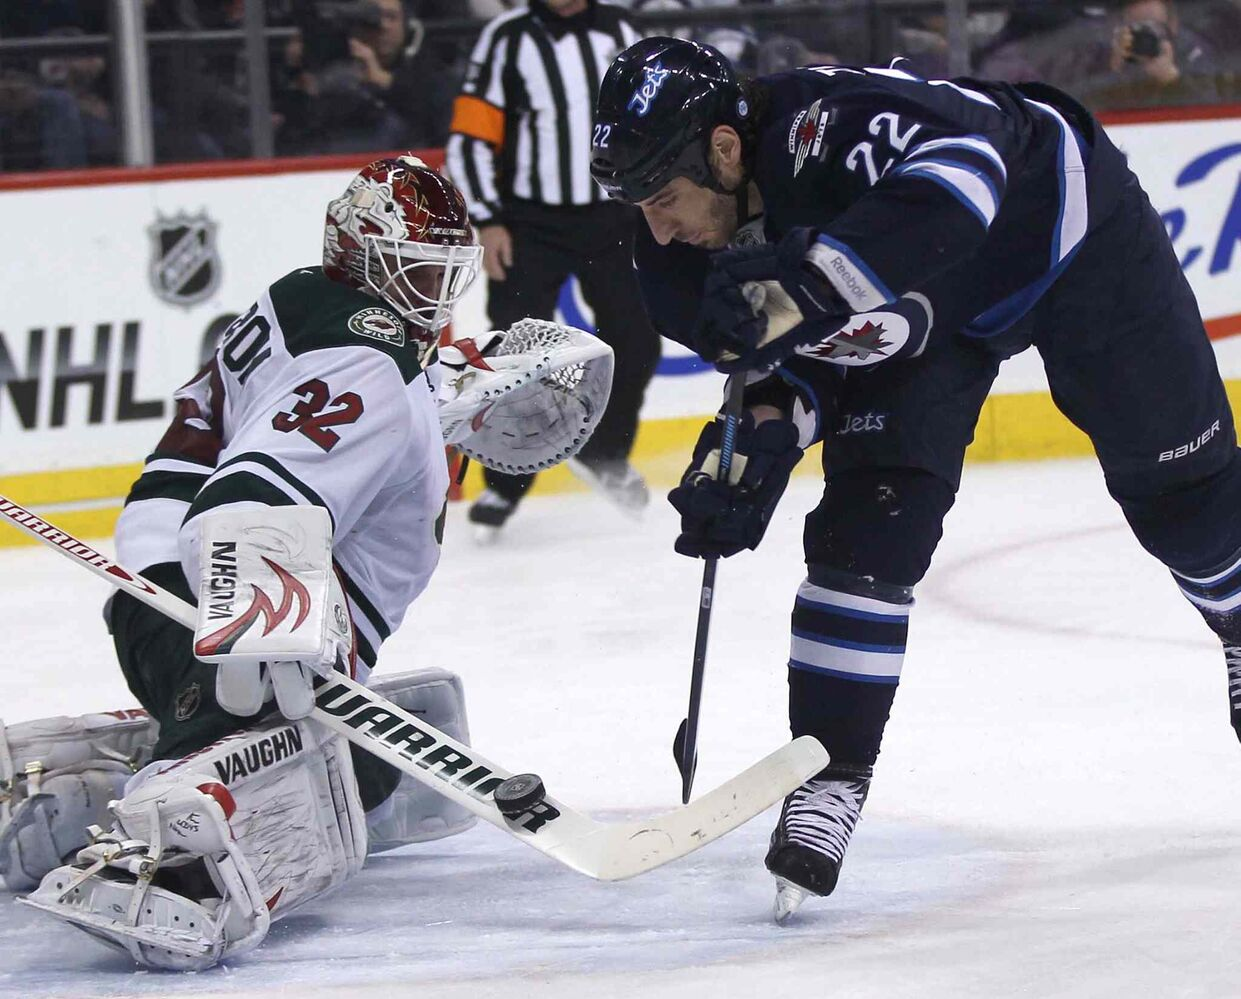 Winnipeg Jets forward Chris Thorburn is stymied by Minnesota Wild goaltender Niklas Backstrom during the second period. (JOE BRYKSA / WINNIPEG FREE PRESS)